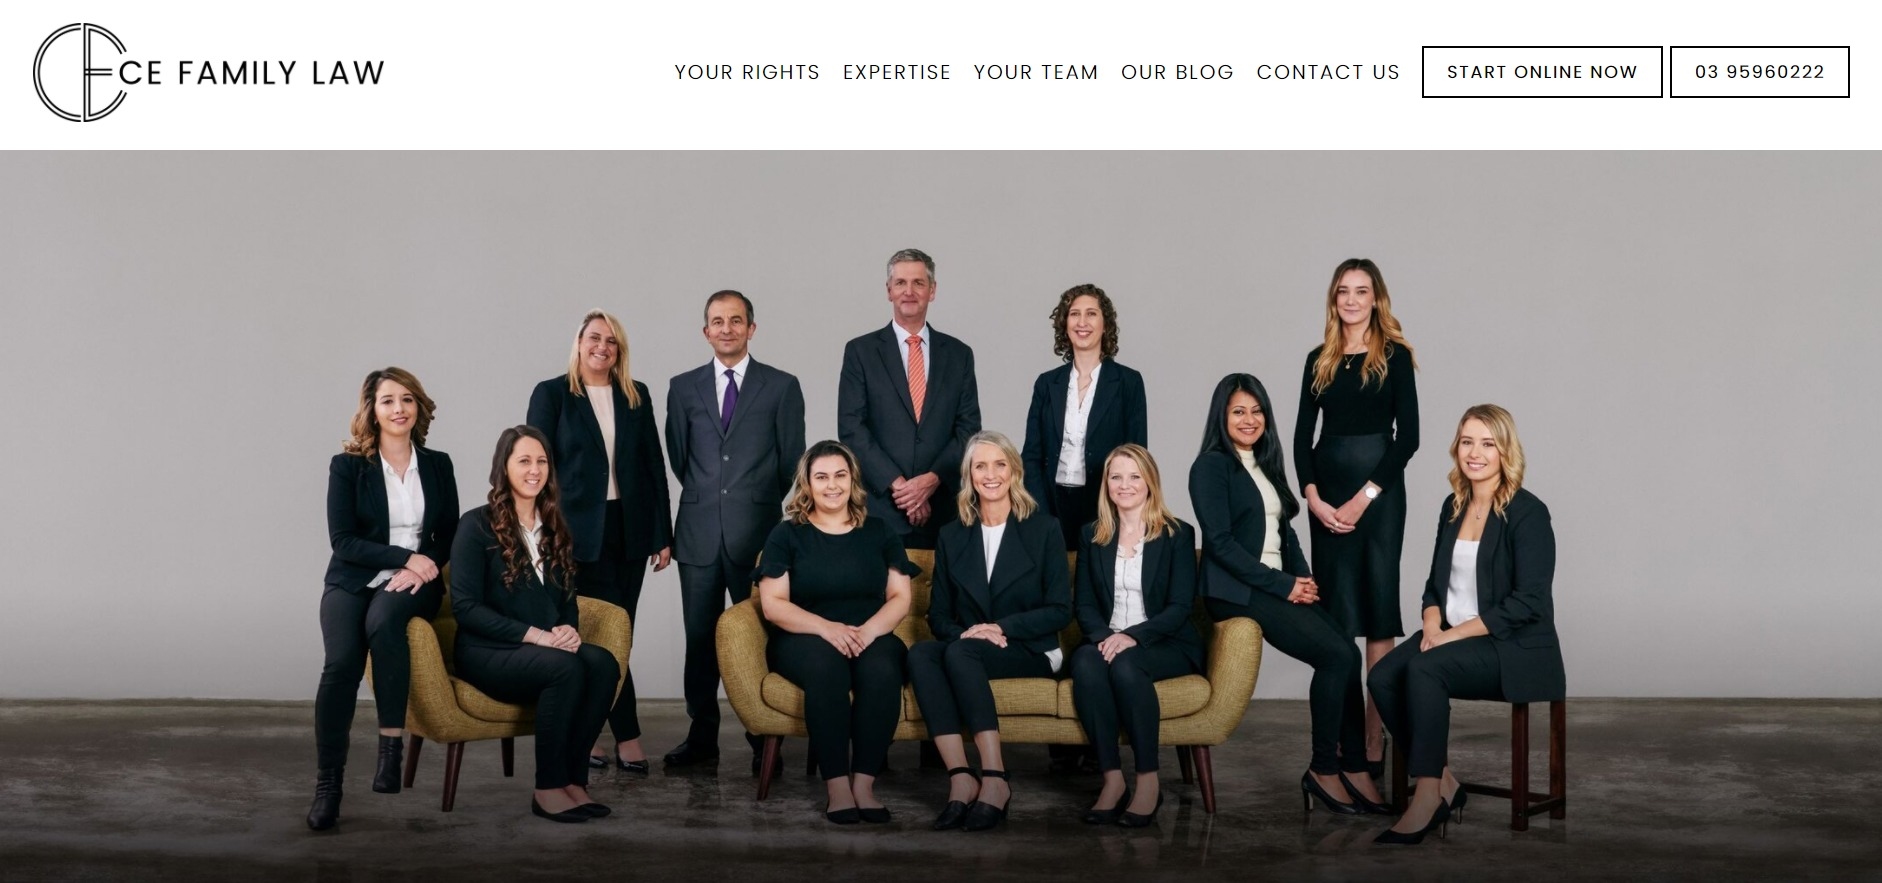 Ce Family Law